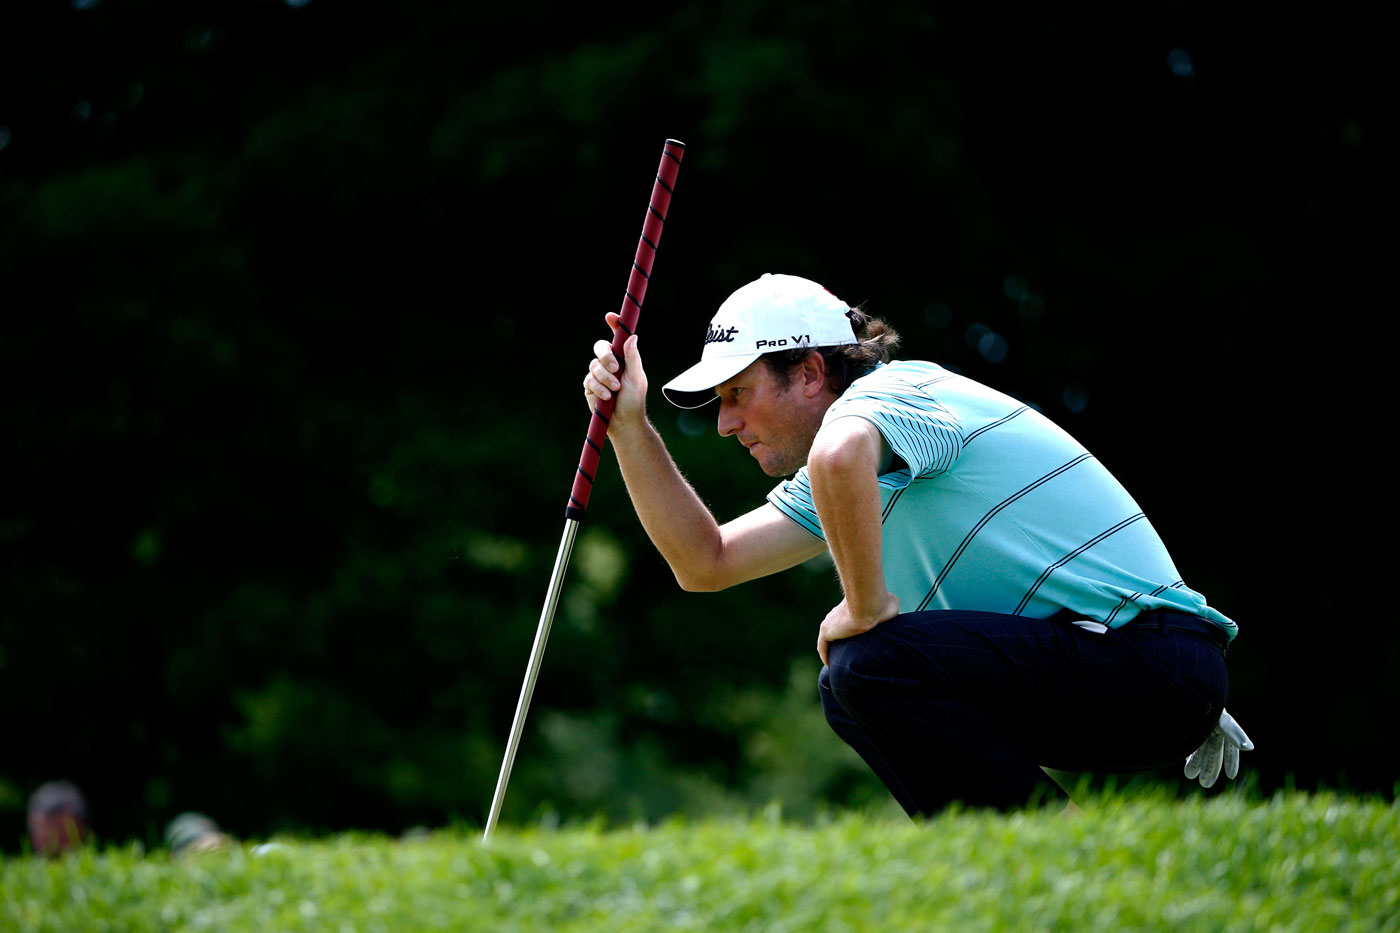 Tim Clark lines up a putt during the final round of the RBC Canadian Open in July.